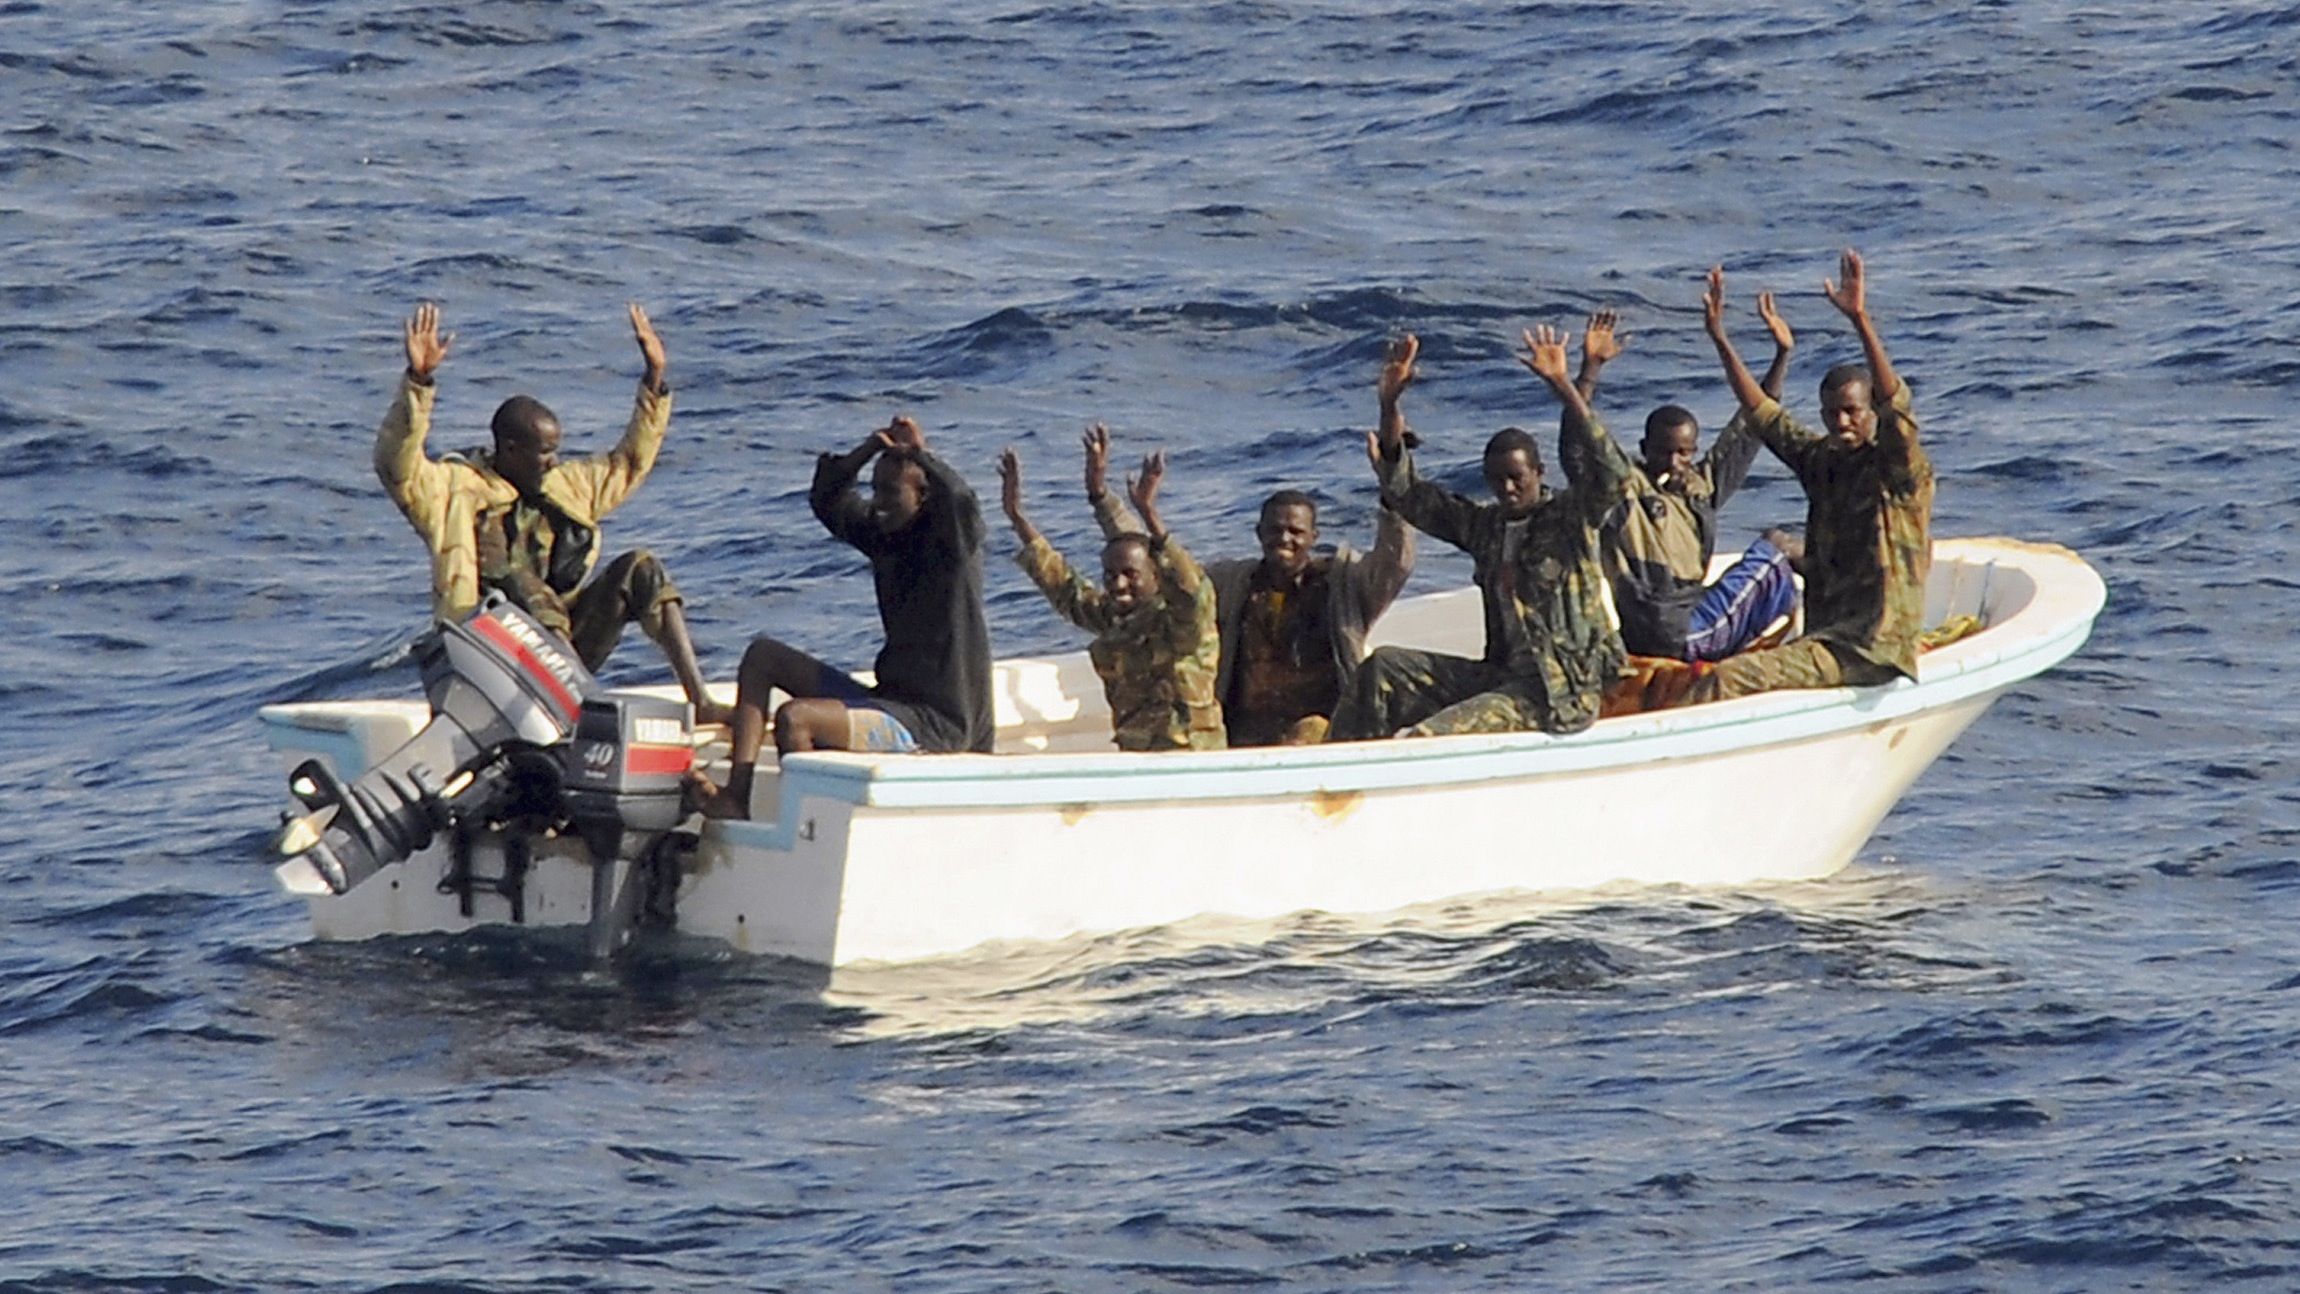 Suspected pirates keep their hands in the air as directed by sailors aboard the guided-missile cruiser USS Vella Gulf (CG 72) (not shown), in the Gulf of Aden, February 11, 2009. A multinational naval force seized the seven suspected pirates in the first such action in its anti-piracy campaign, the U.S. Navy said. REUTERS/Jason R. Zalasky/U.S. Navy/Handout (SOMALIA).  FOR EDITORIAL USE ONLY. NOT FOR SALE FOR MARKETING OR ADVERTISING CAMPAIGNS. - RTXBIUW